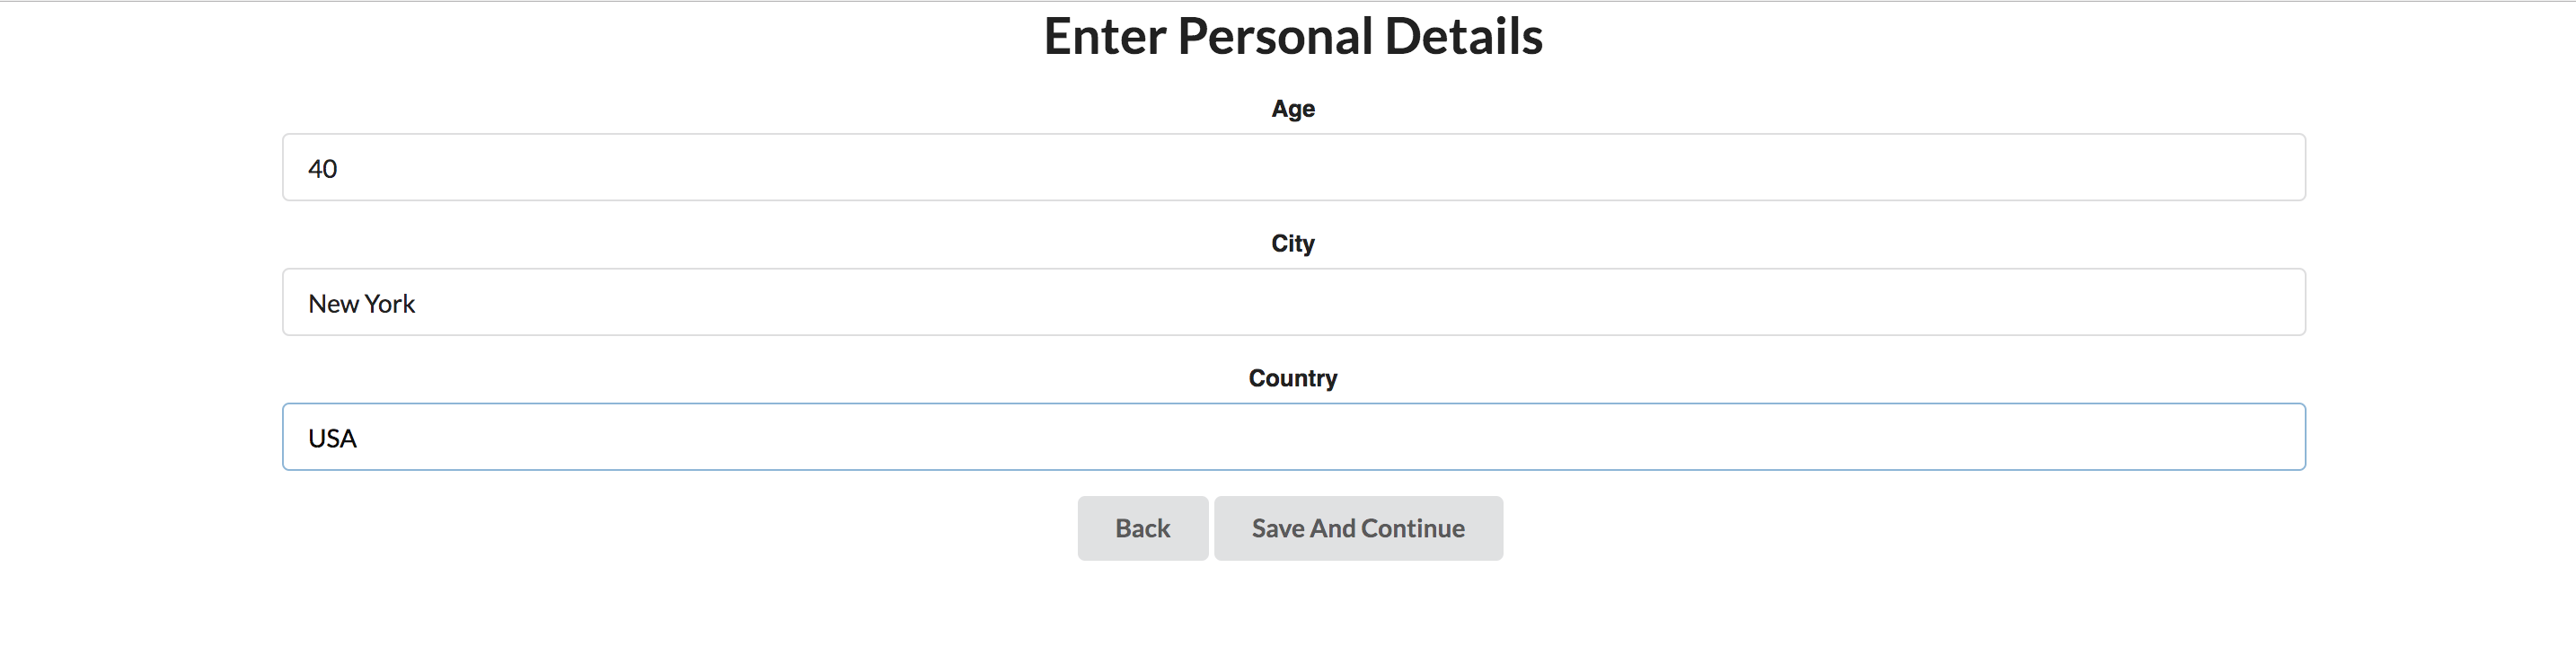 Personal Details Section